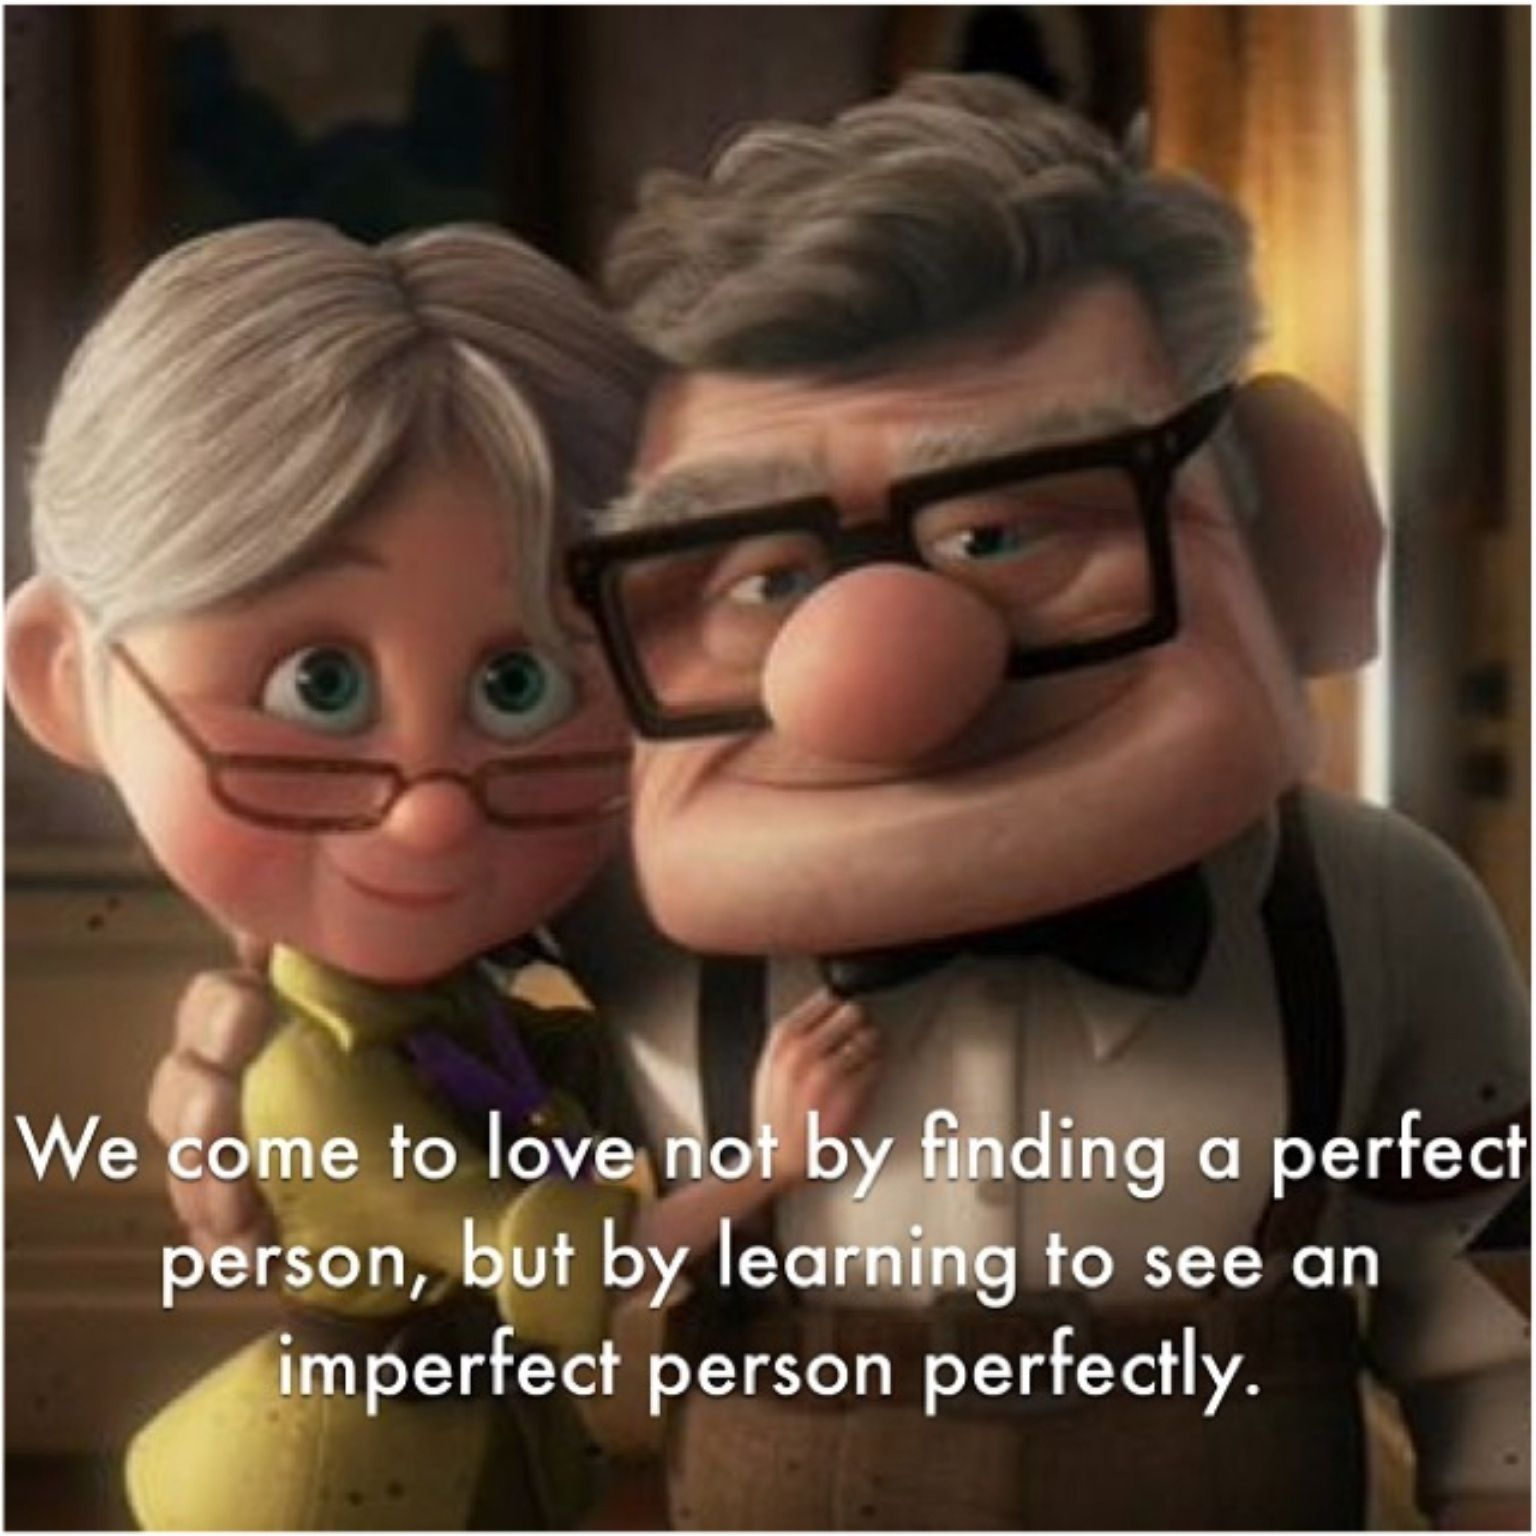 Old Age Couple Quotes: Loving Perfectly Imperfectly